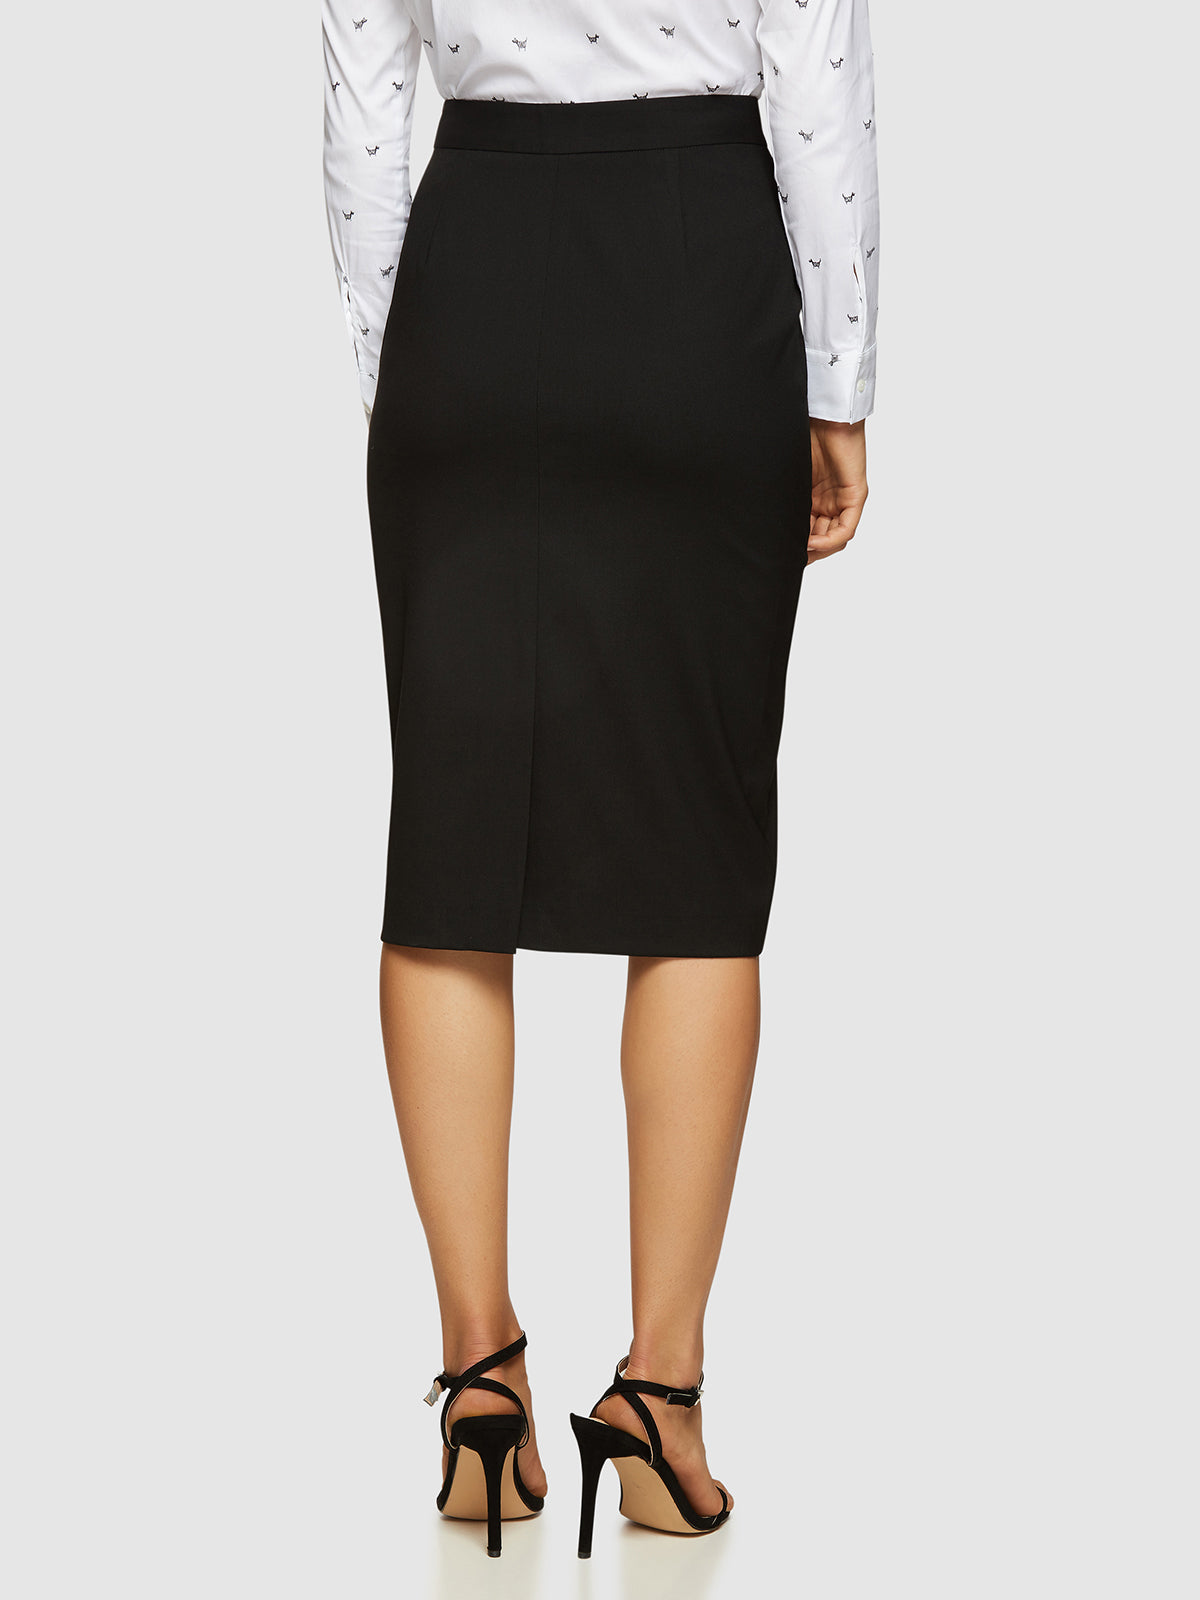 PEGGY ECO BLACK SUIT SKIRT BLACK